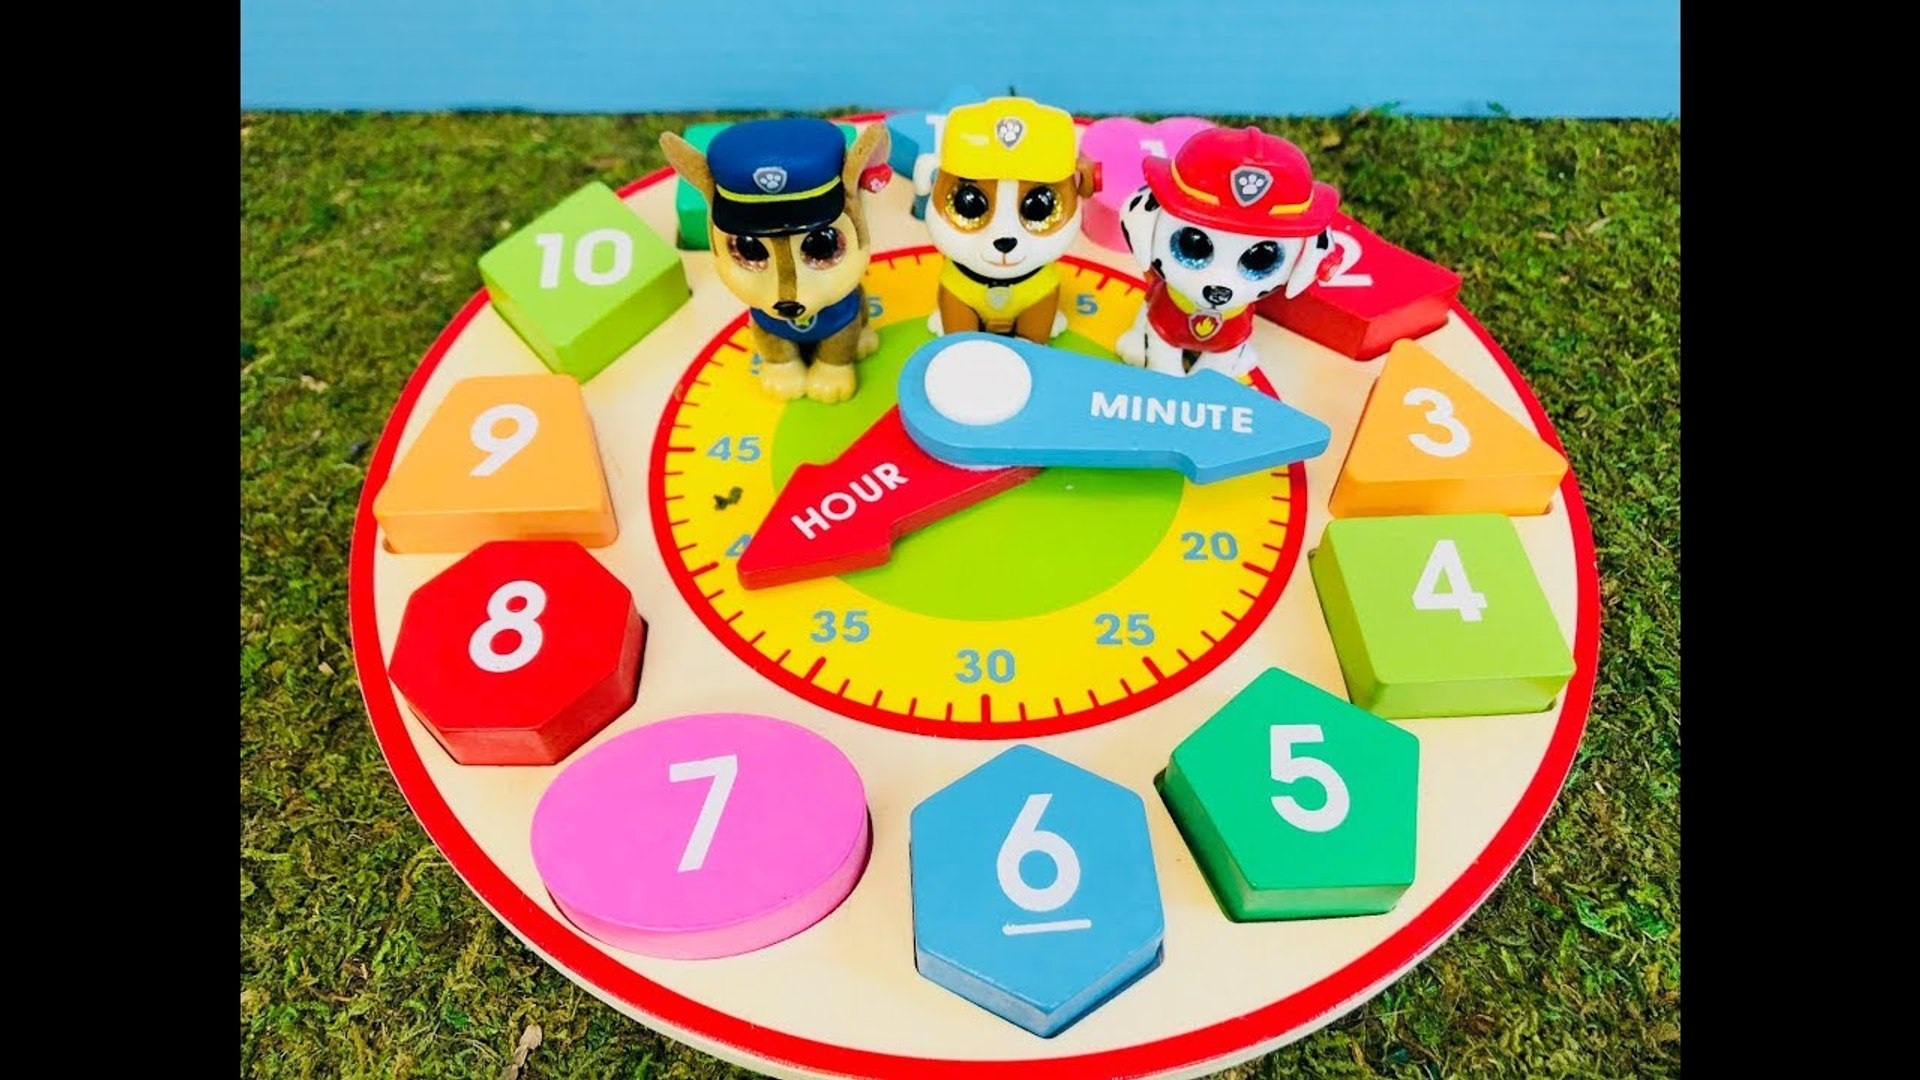 PAW PATROL Toys Daily Routine Learning Time On Wooden Clock-